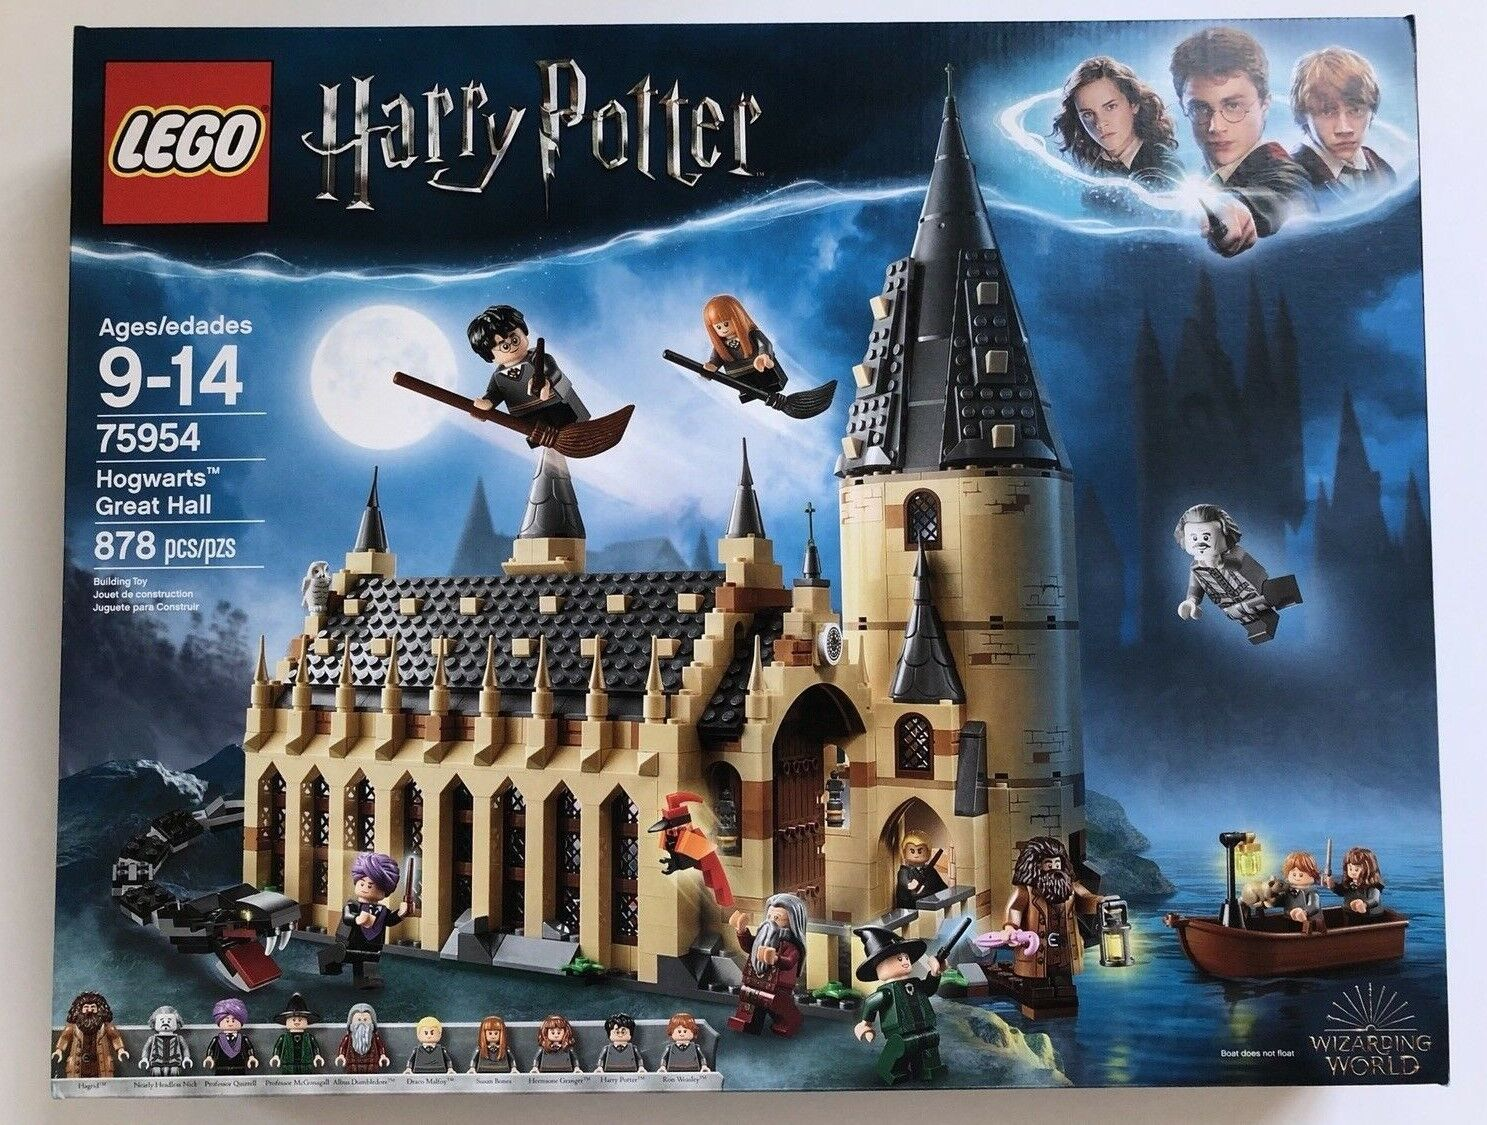 2018 LEGO-HARRY POTTER WIZARDING WORLD HOGWARTS GREAT HALL 75954  IN HAND NOW